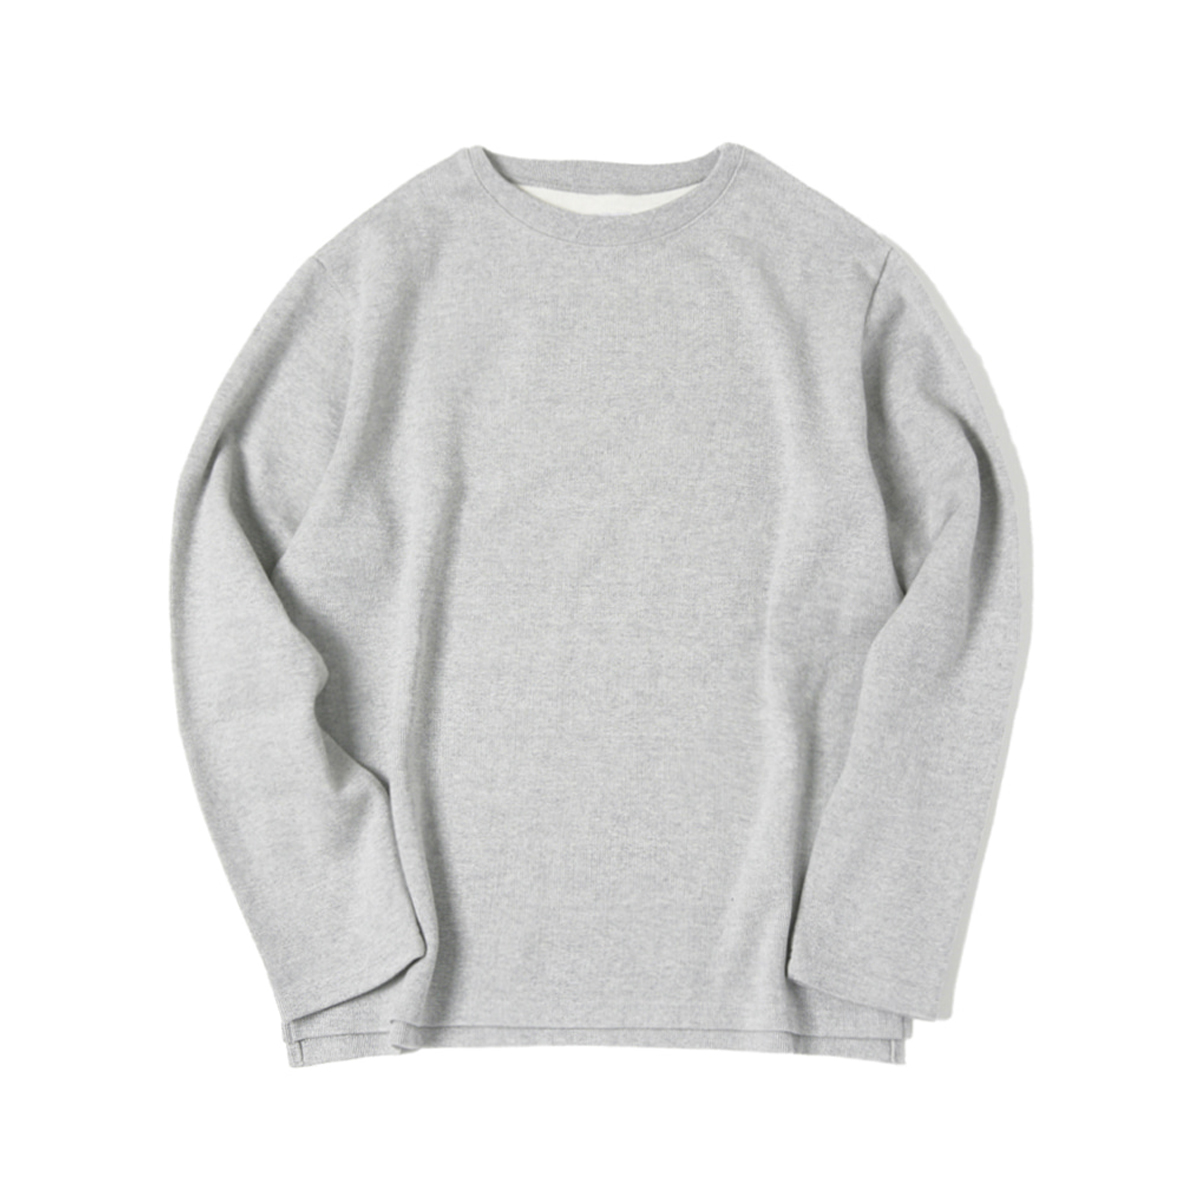 [ELSEWEAR] DON'T WORRY L/S TEE 'GRAY'